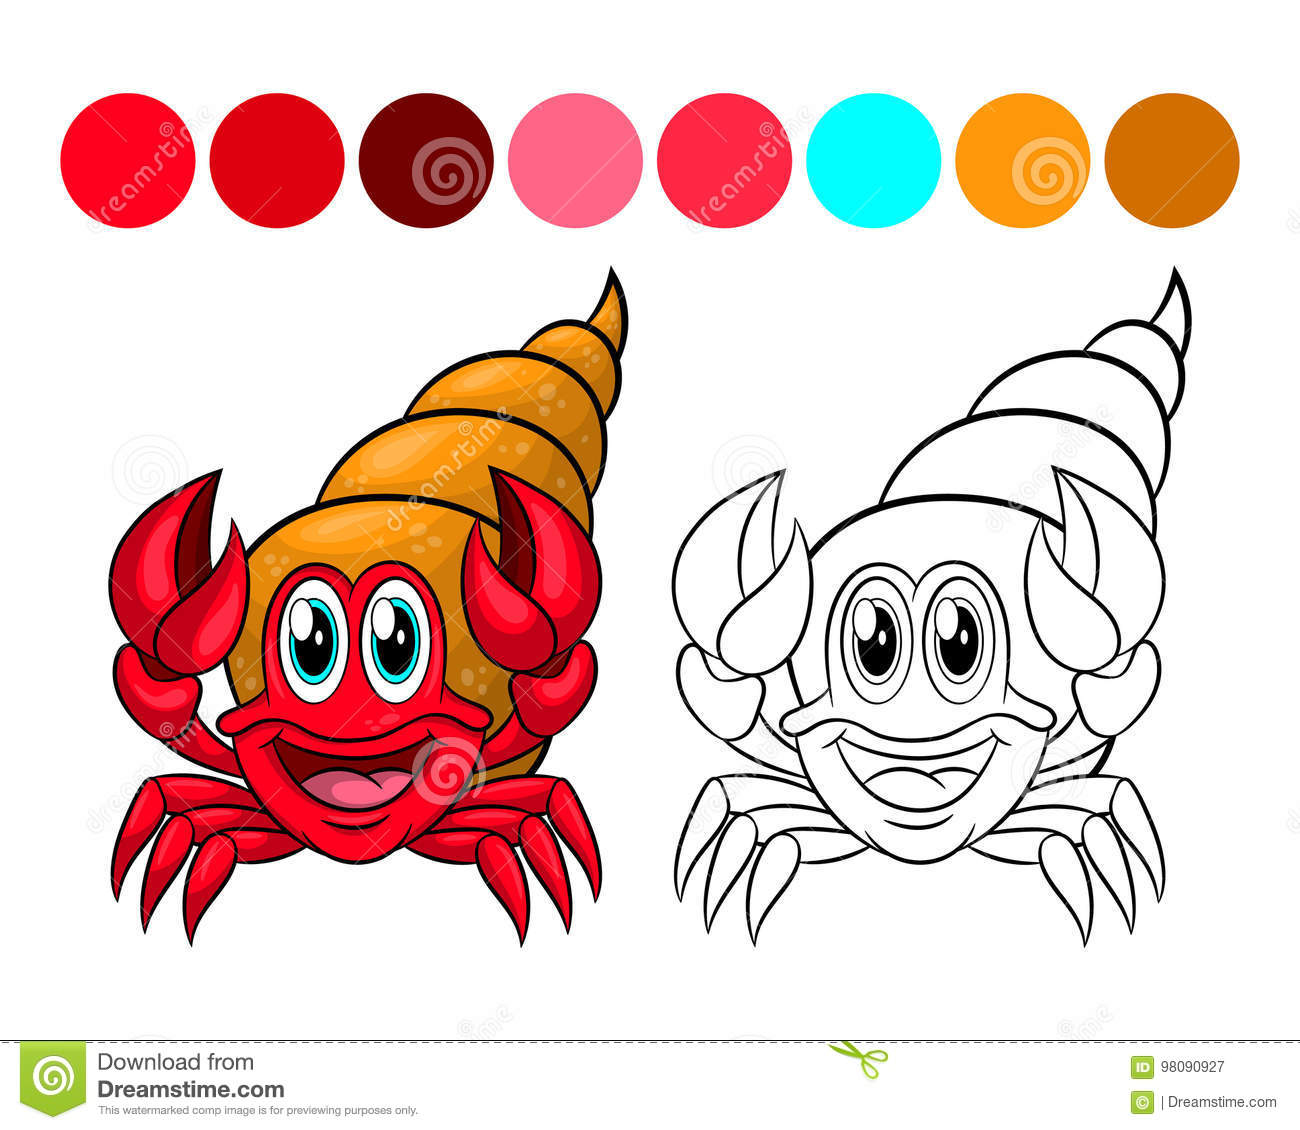 Attractive Design Coloring Ensign - Drawing Coloring - androidharga.info